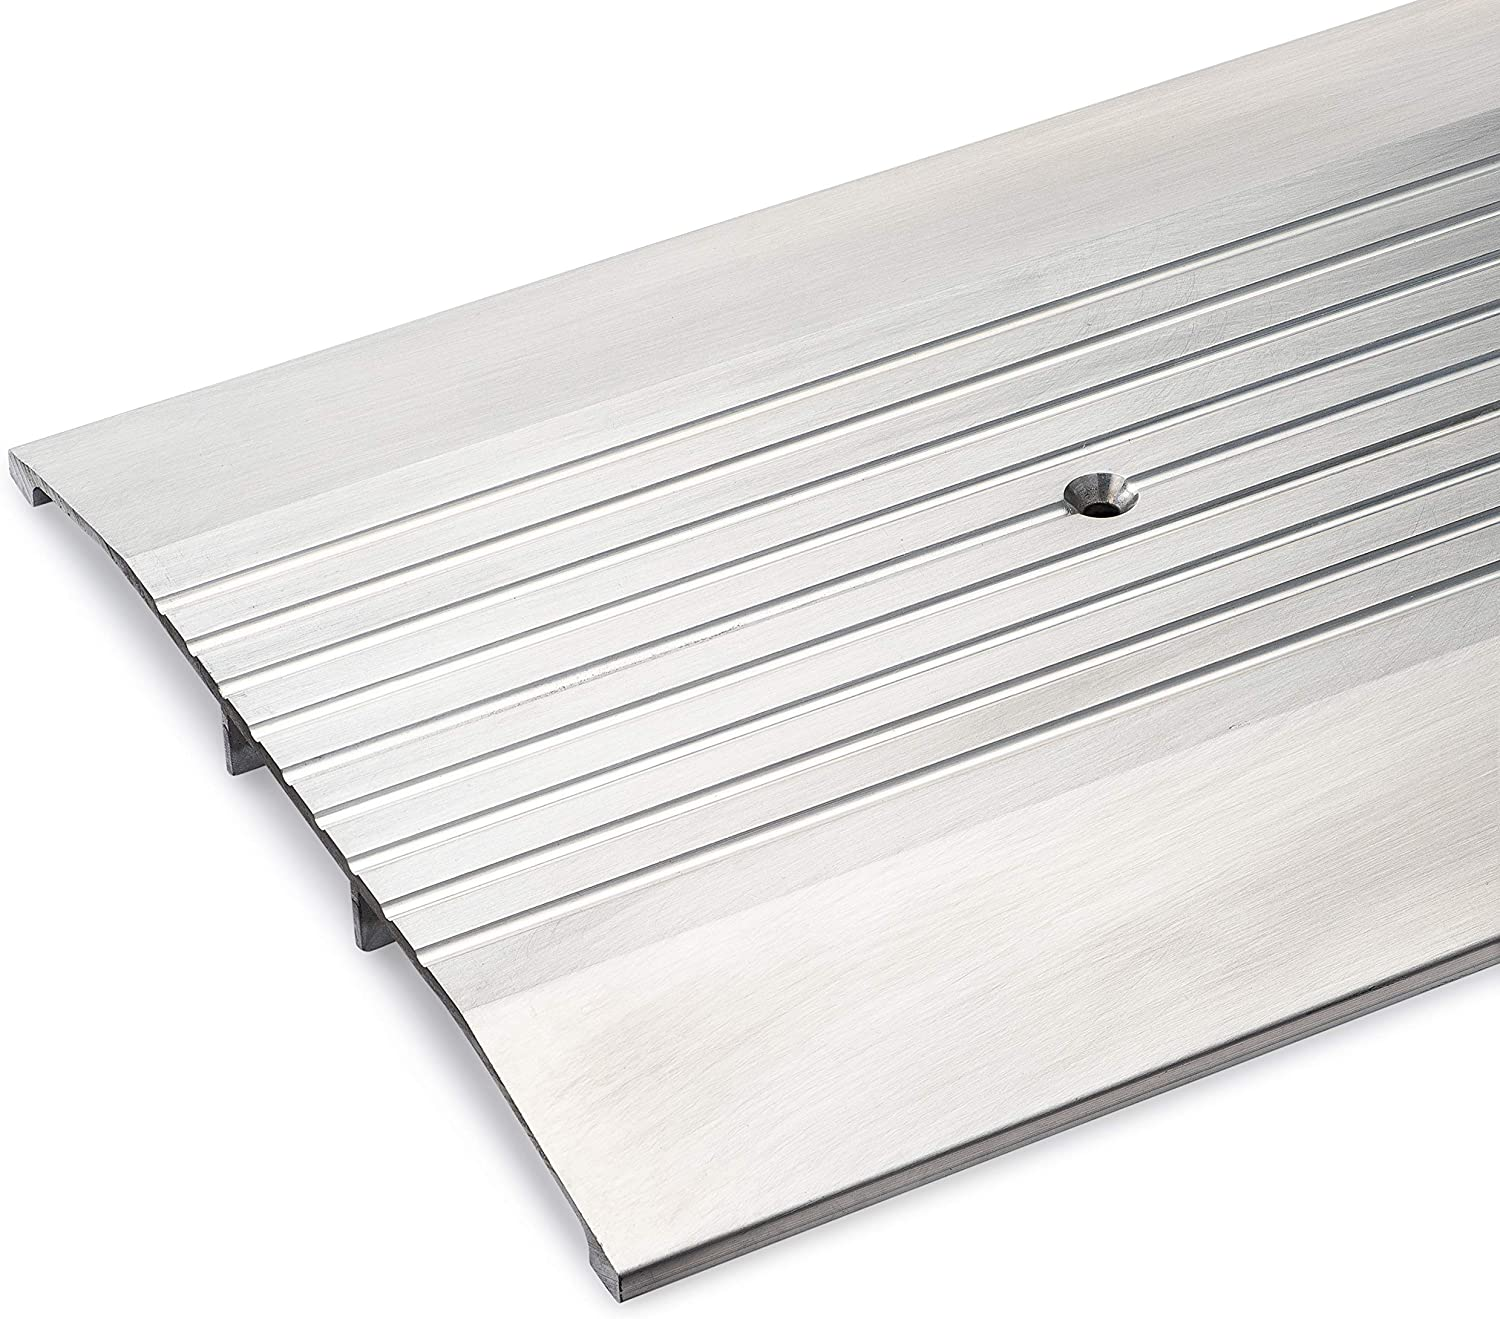 White Corrugated Threshold 3 1//4 Wide x 3//4 Tall 3 FT